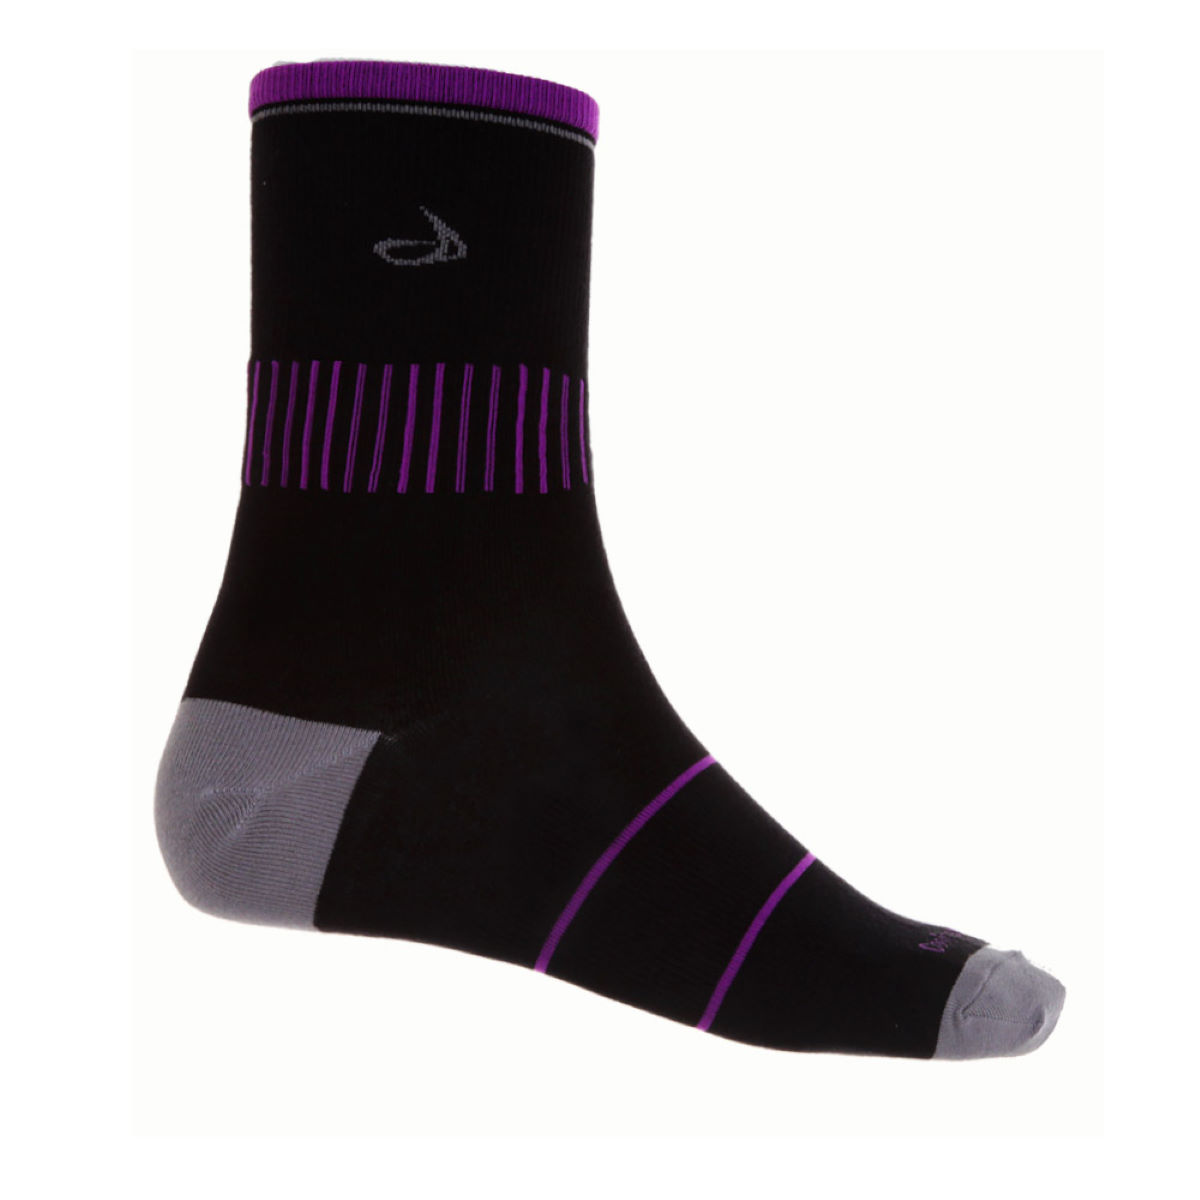 dhb 14cm Light Weight Socks